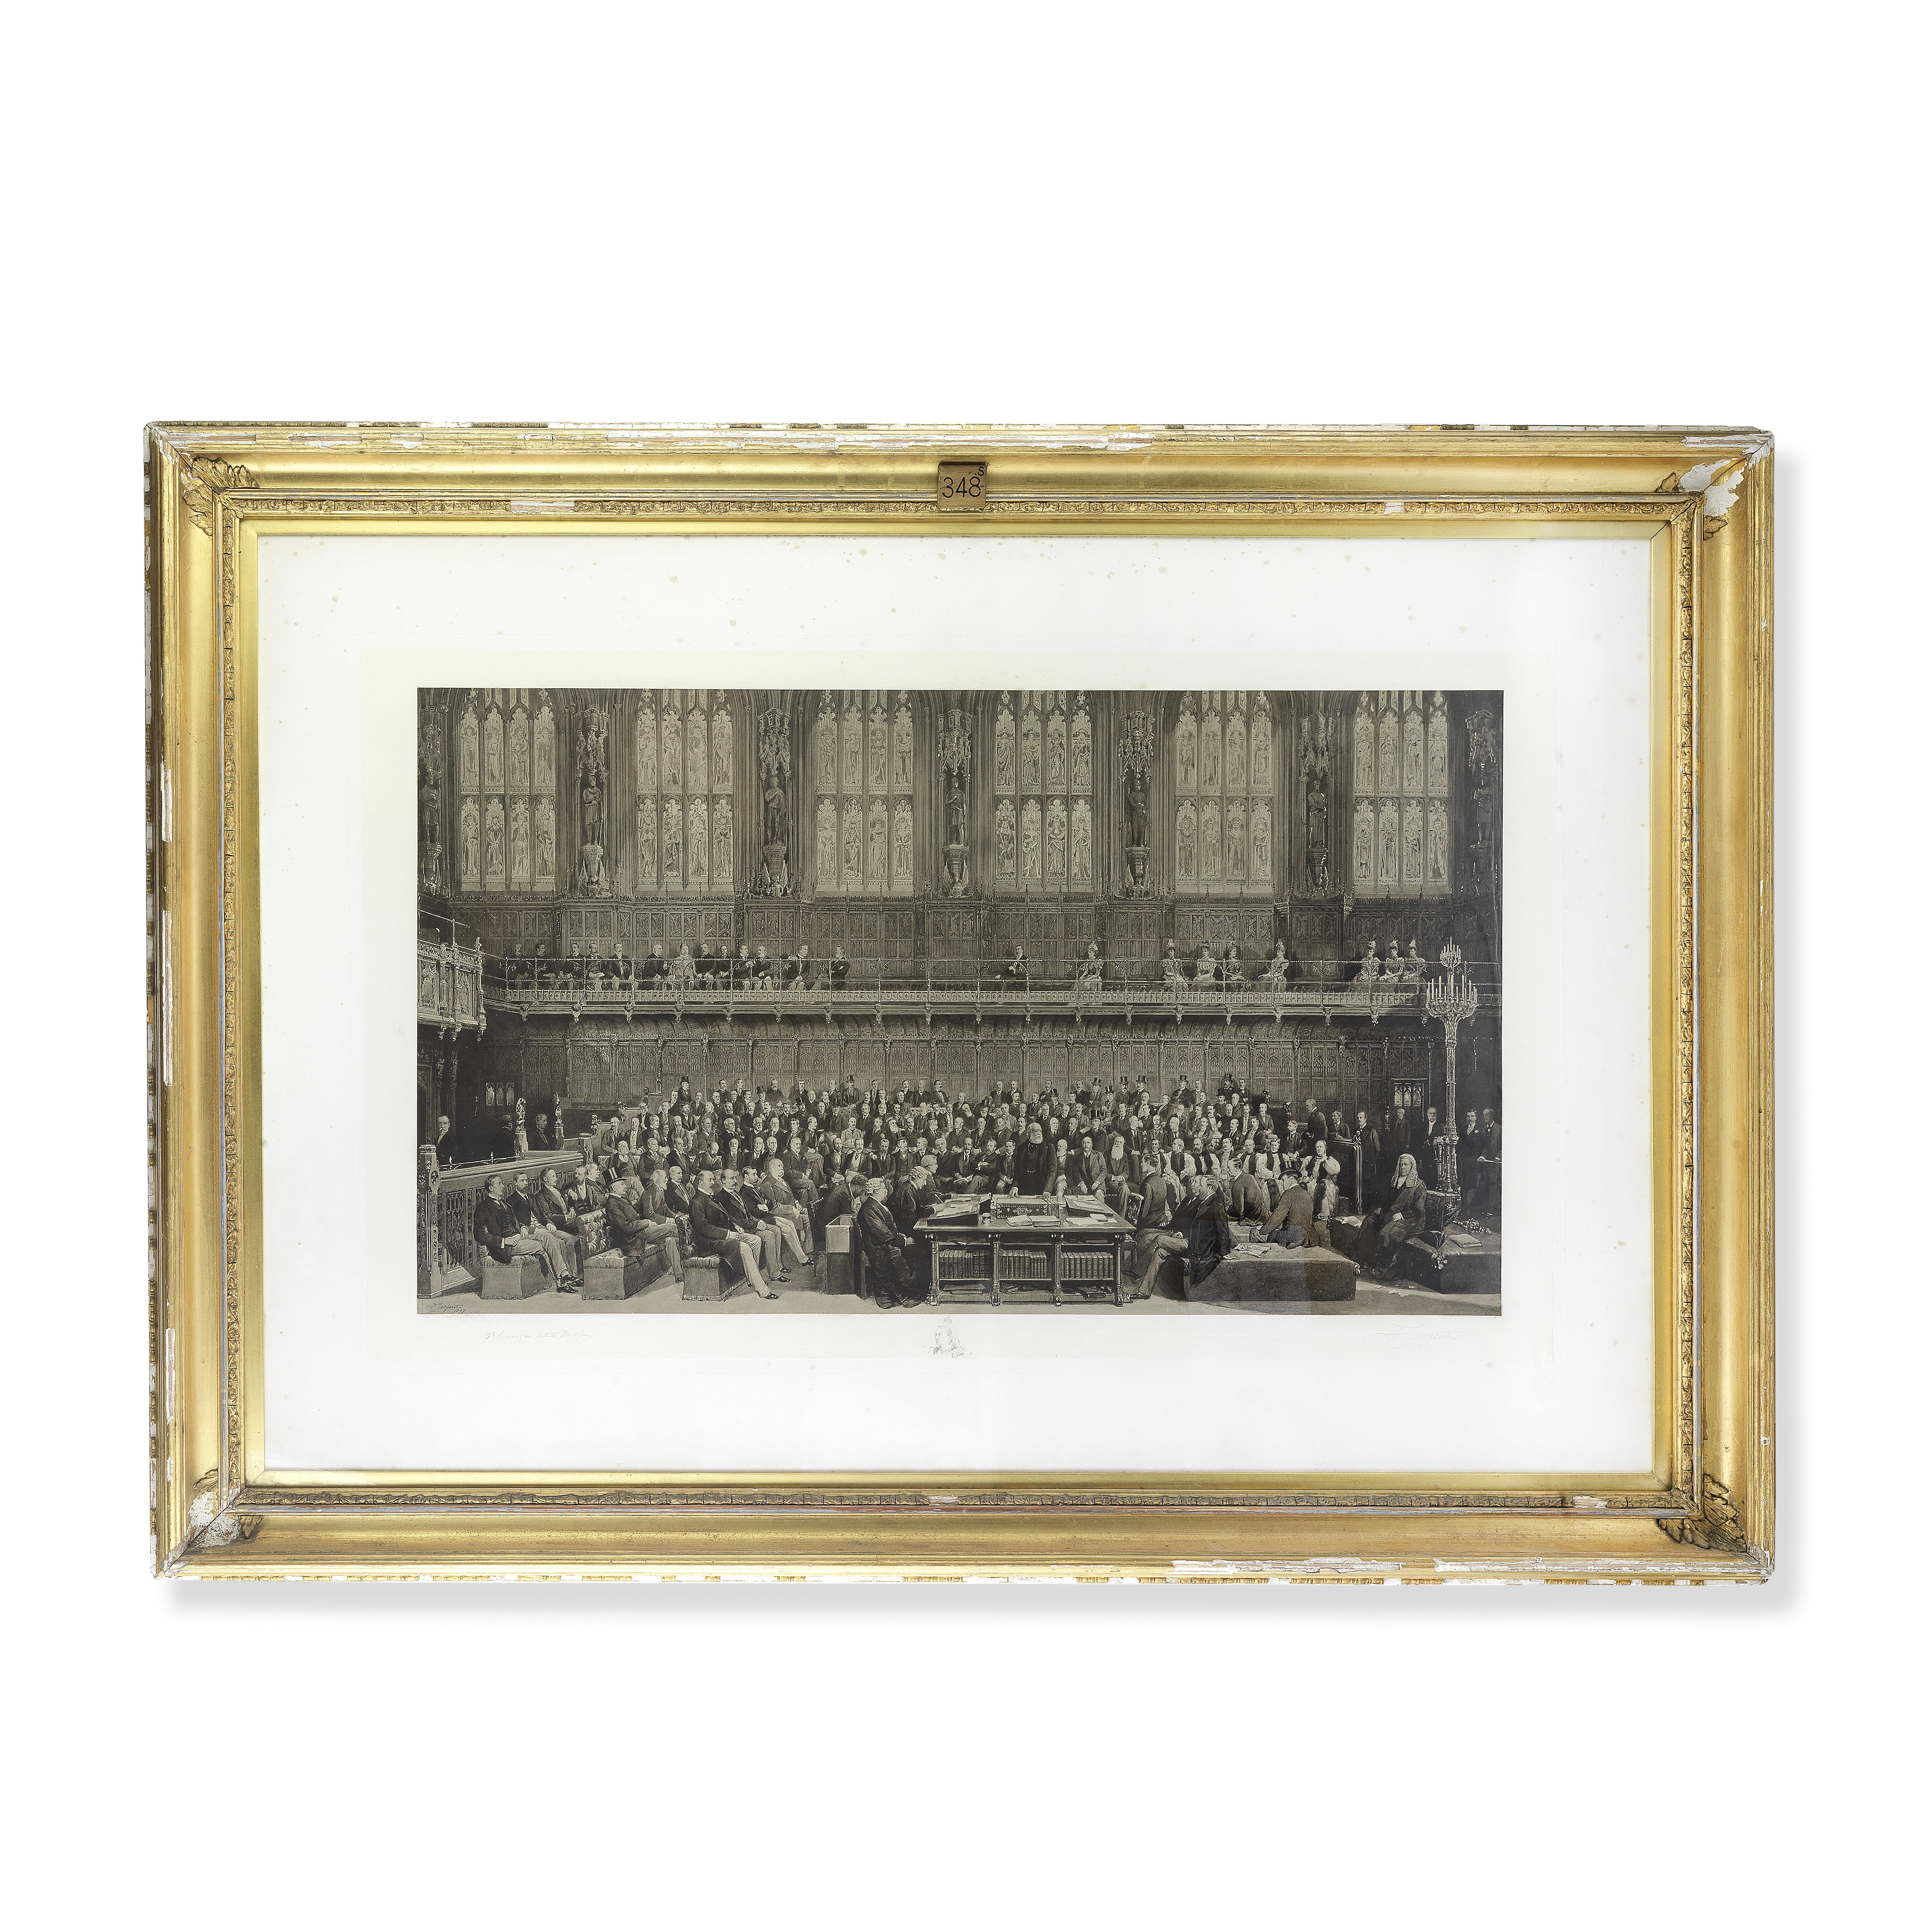 A late 19th century print depicting 'The House of Lords, 1897' showing various dignitaries and po...